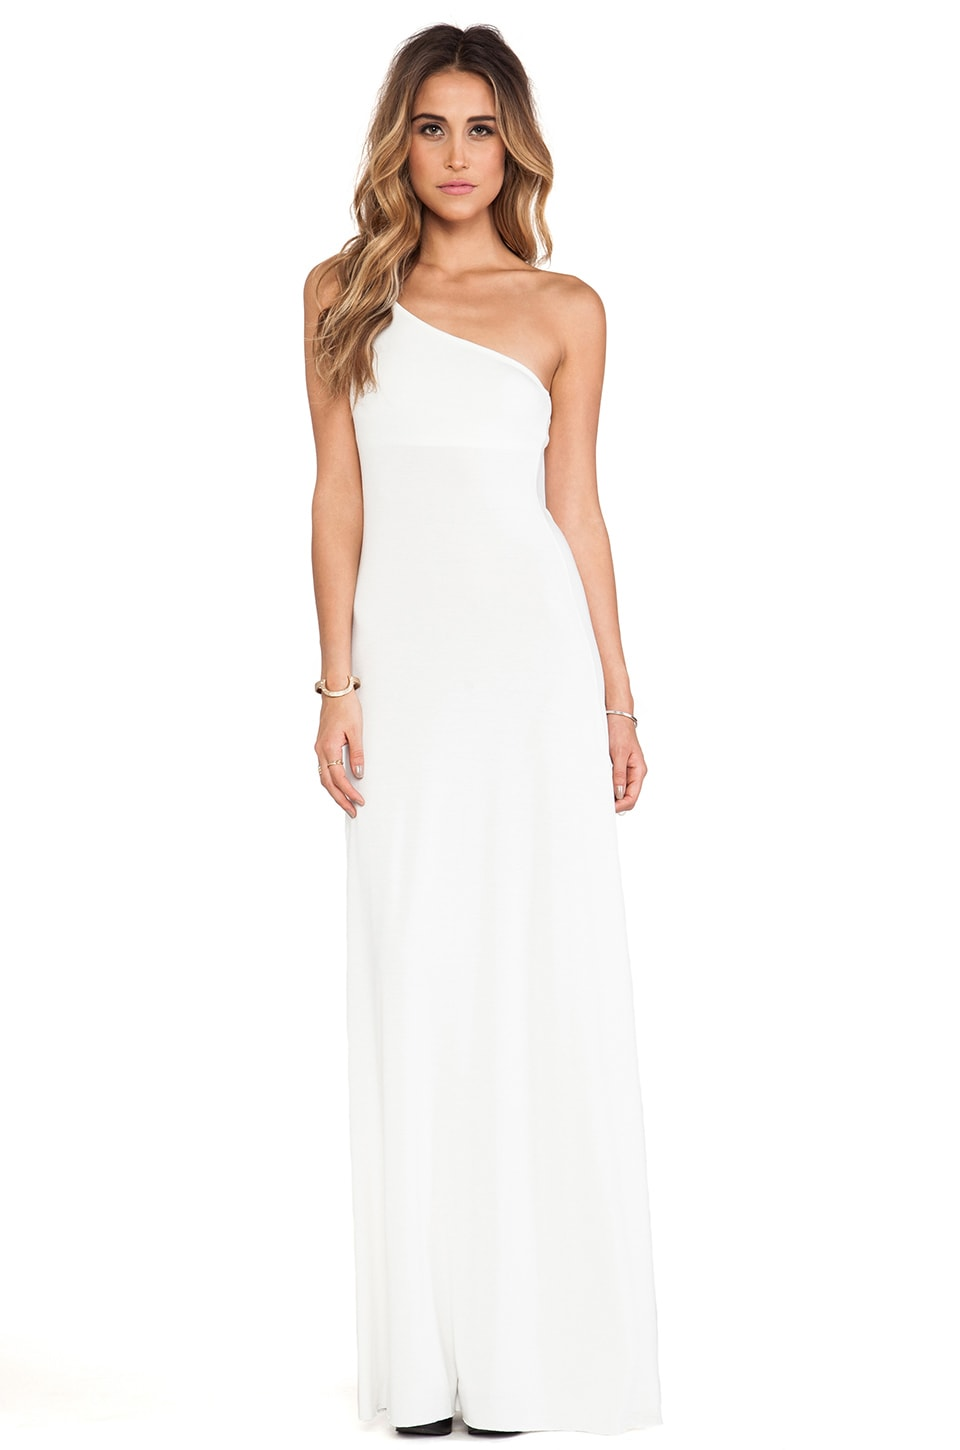 Rachel Pally Conrad One Shoulder Dress in White